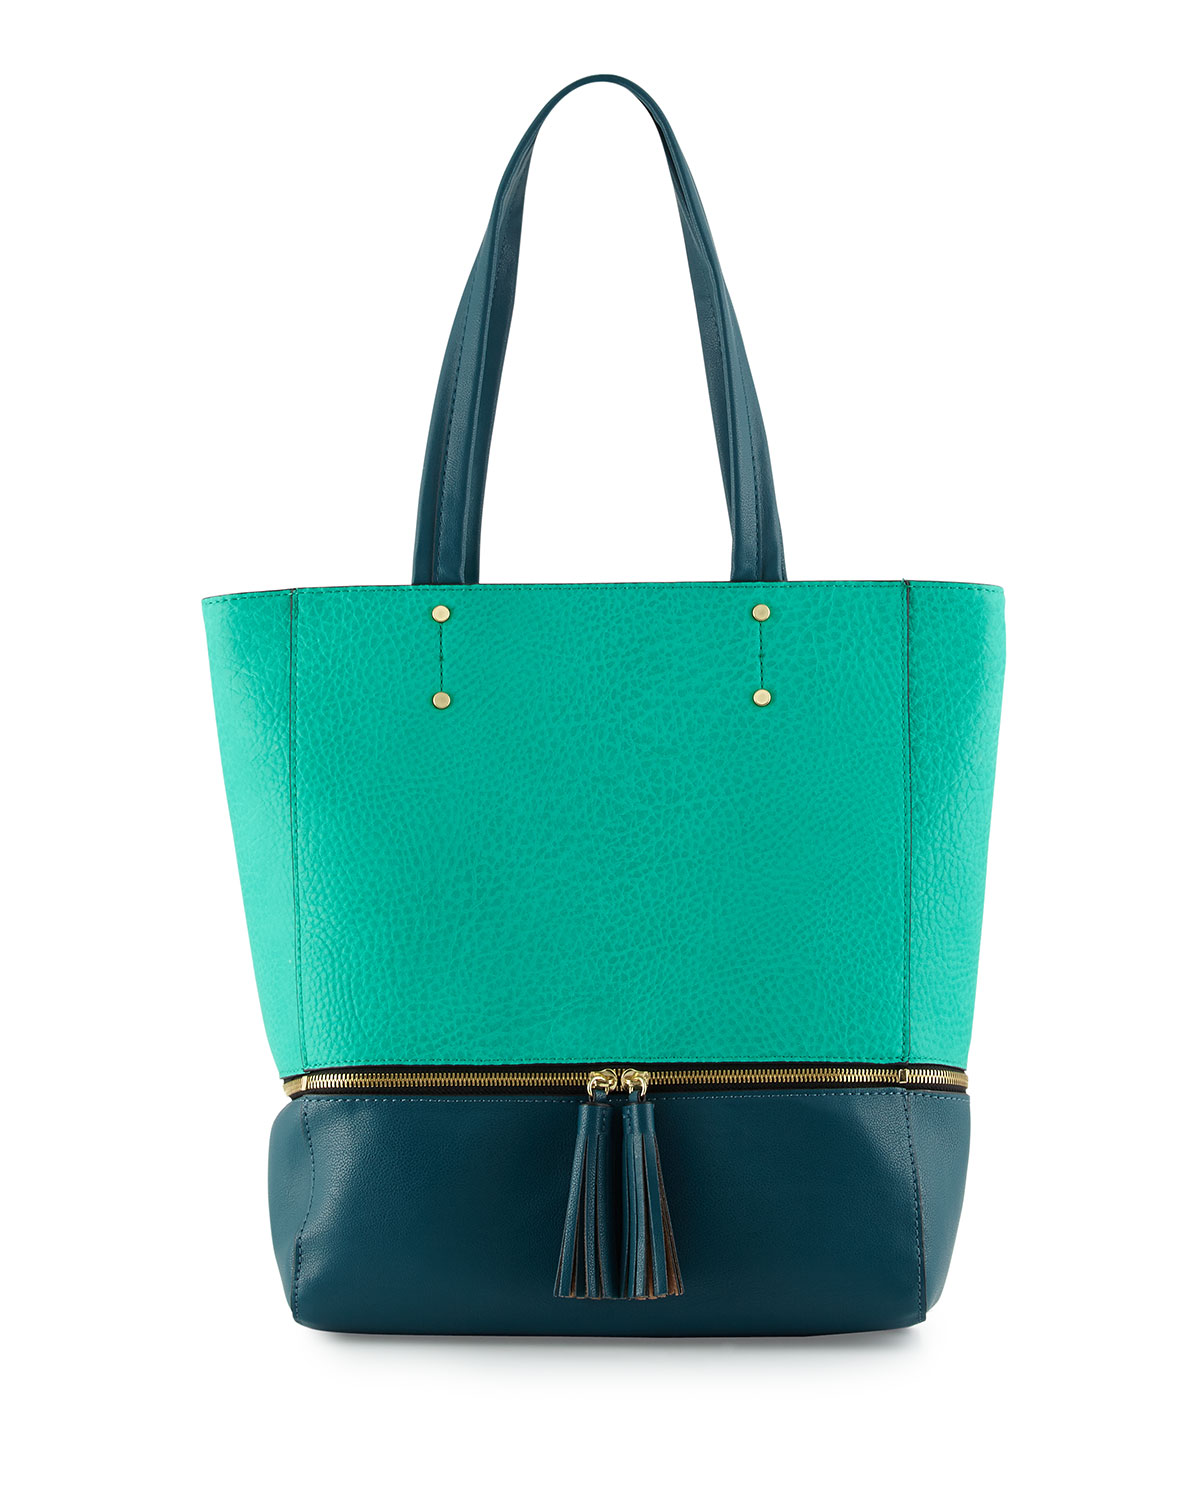 Dylan North-South Tote Bag in Green/Teal